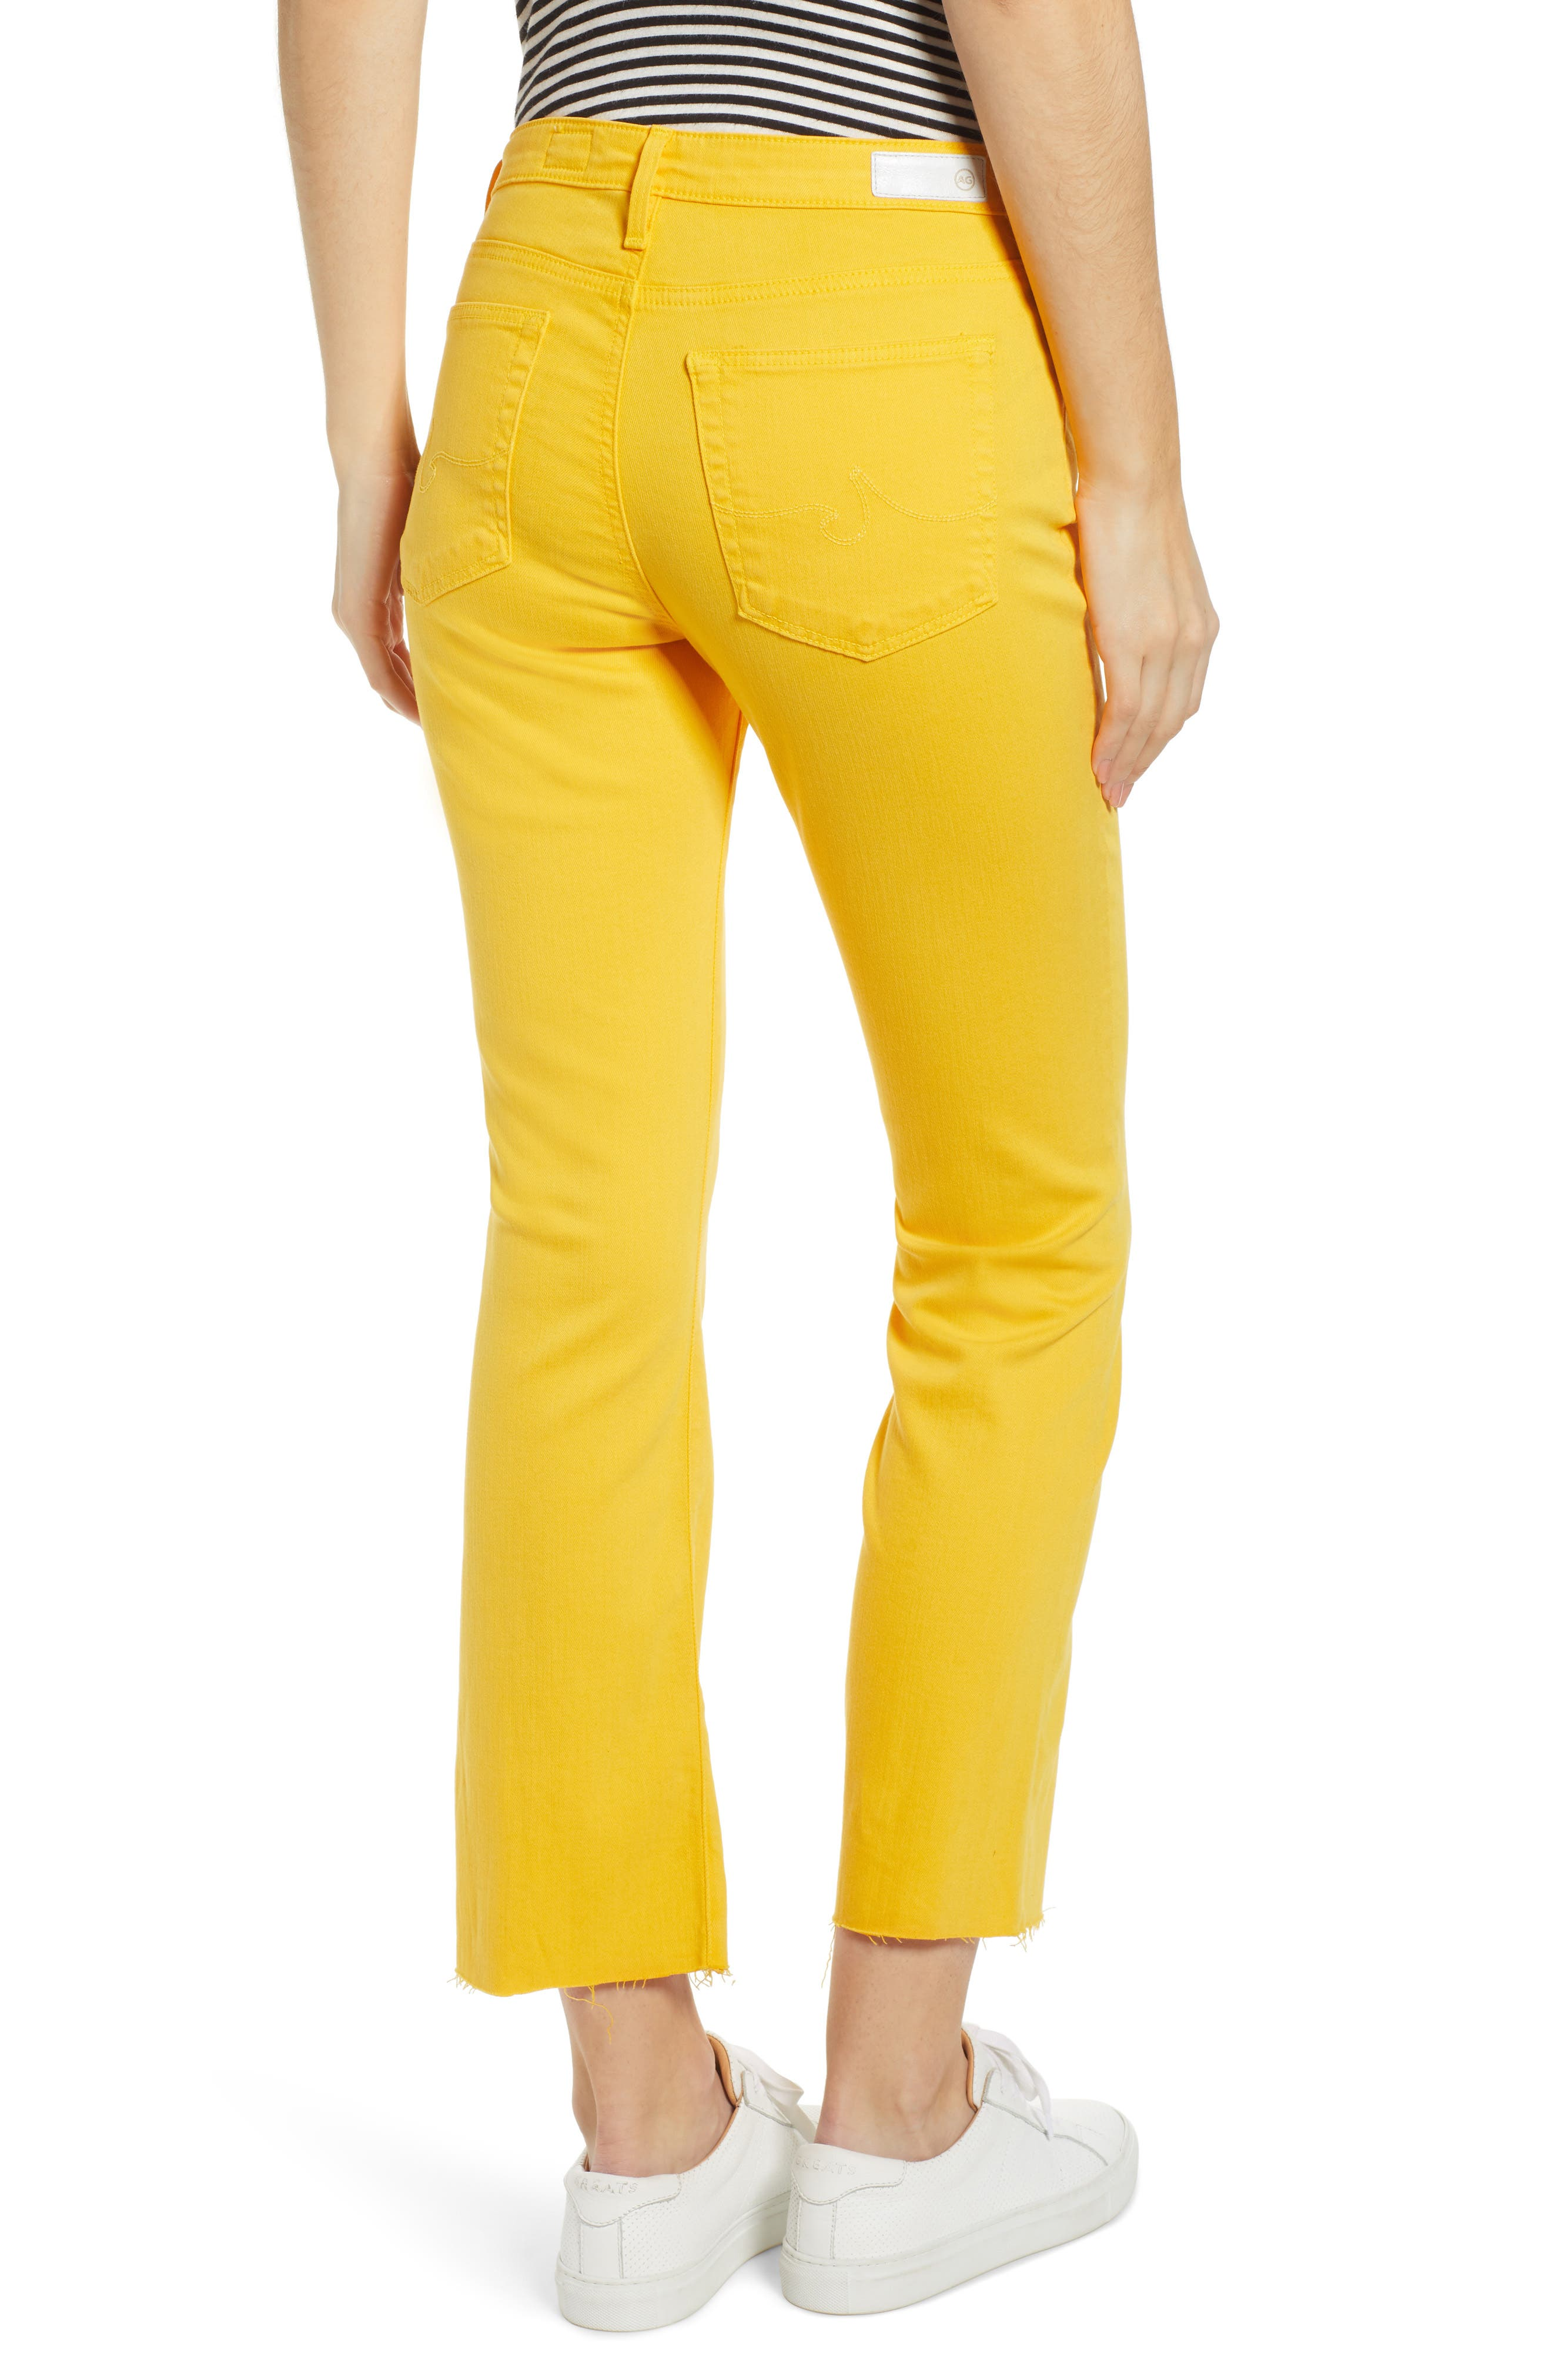 AG, Jodi High Waist Crop Jeans, Alternate thumbnail 2, color, GOLDEN OCHRE